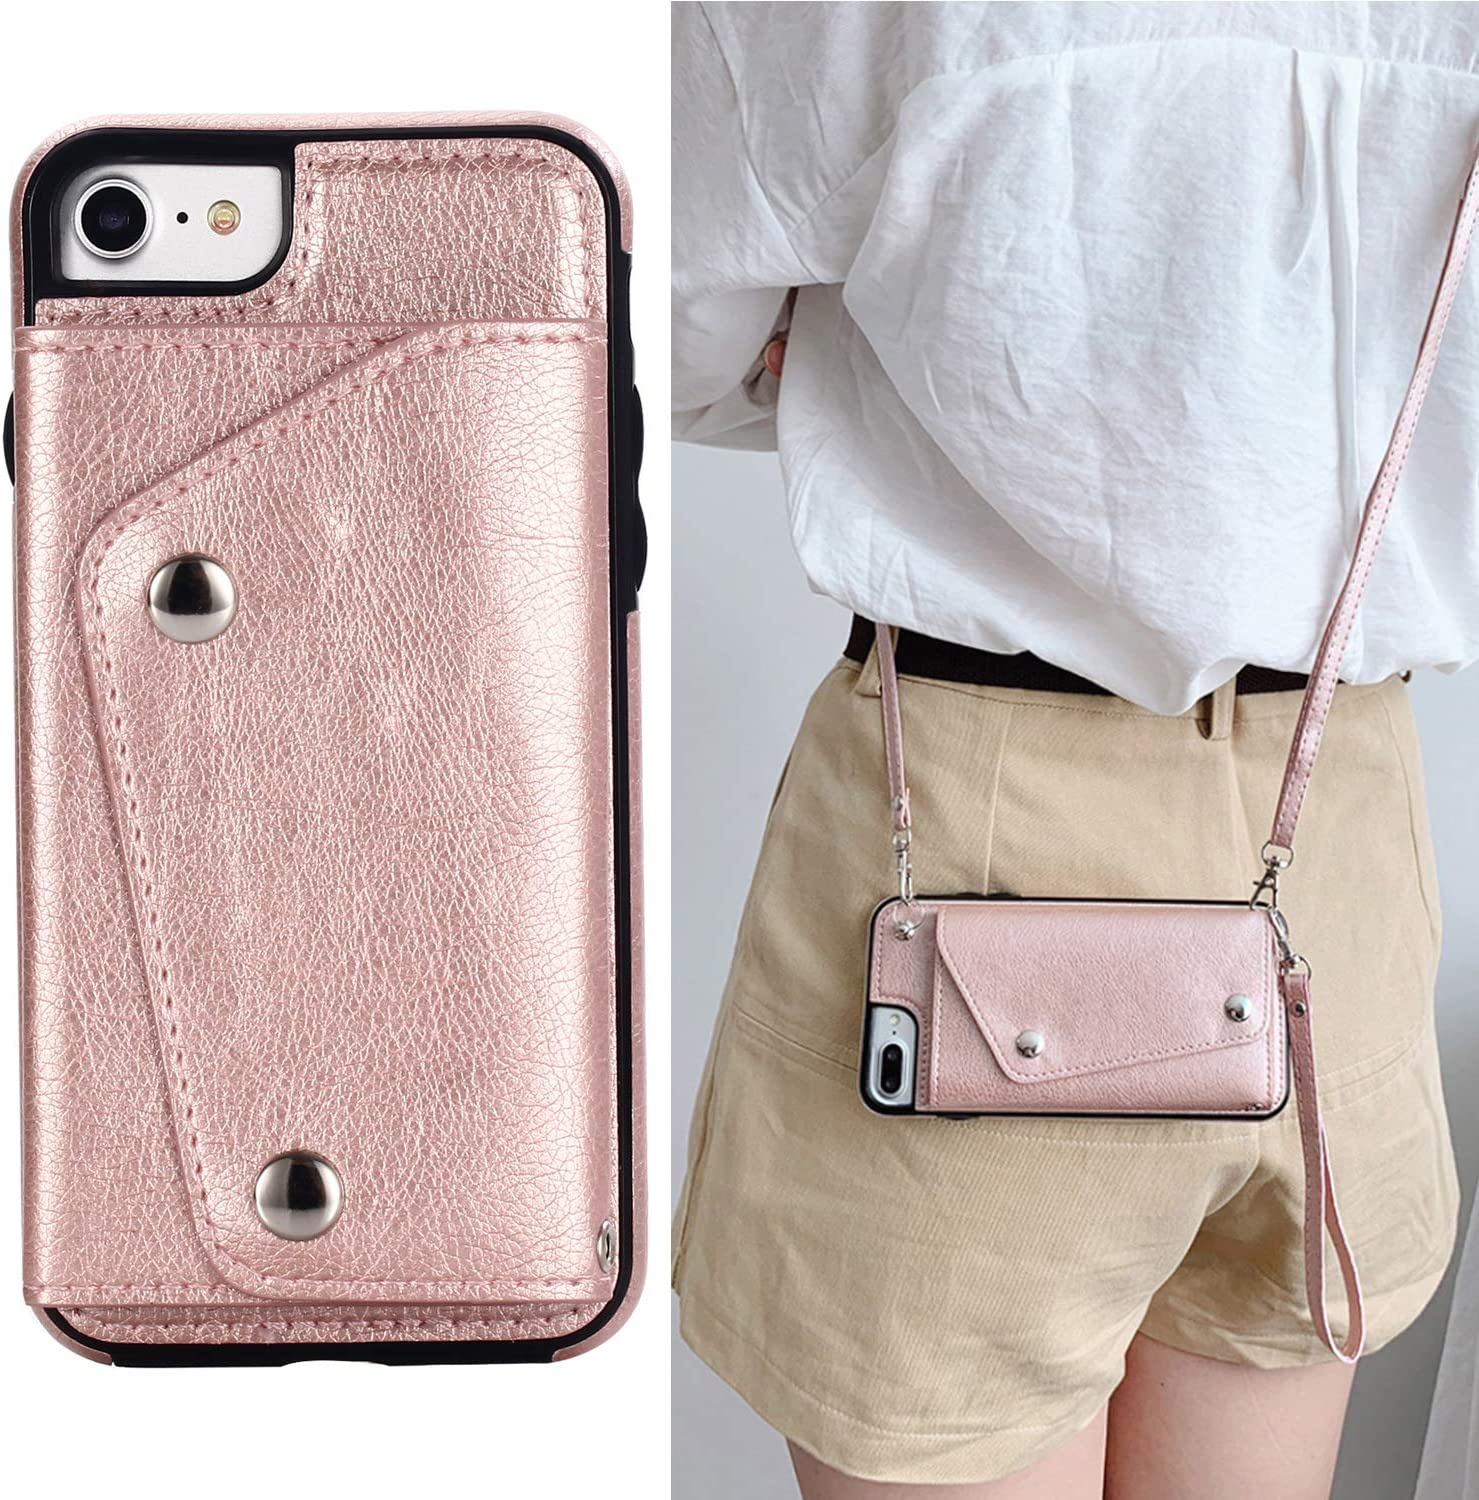 LUVI for iPhone SE/iPhone 8/iPhone 7 Wallet Case with Crossbody Neck Strap Lanyard Handbag Hand Wrist Strap Protective Cover with Credit ID Card Holder Slot PU Leather Case for iPhone SE 2020